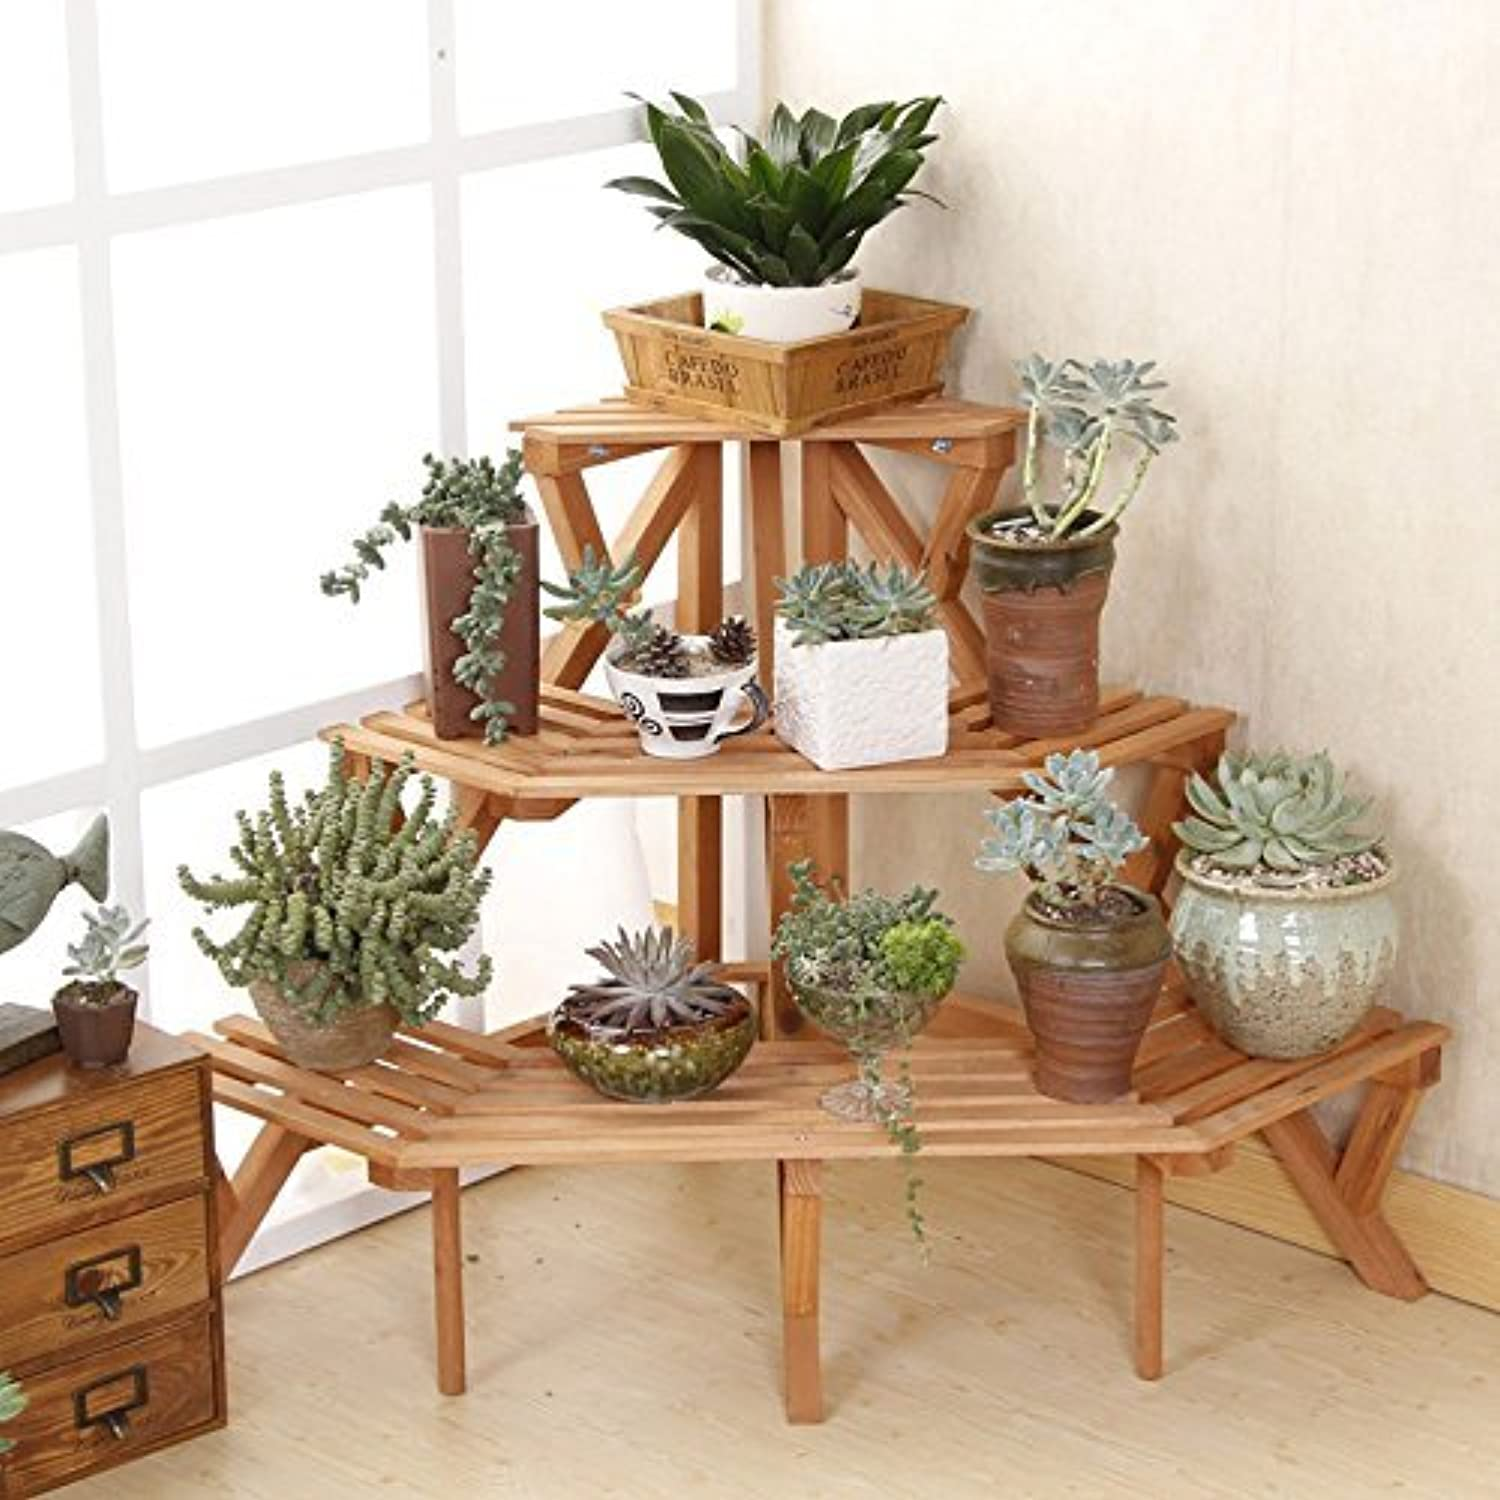 Plant Shelving Indoor 2016 New Style 3 Tier Fir Wood Conner Standing Flower Pot